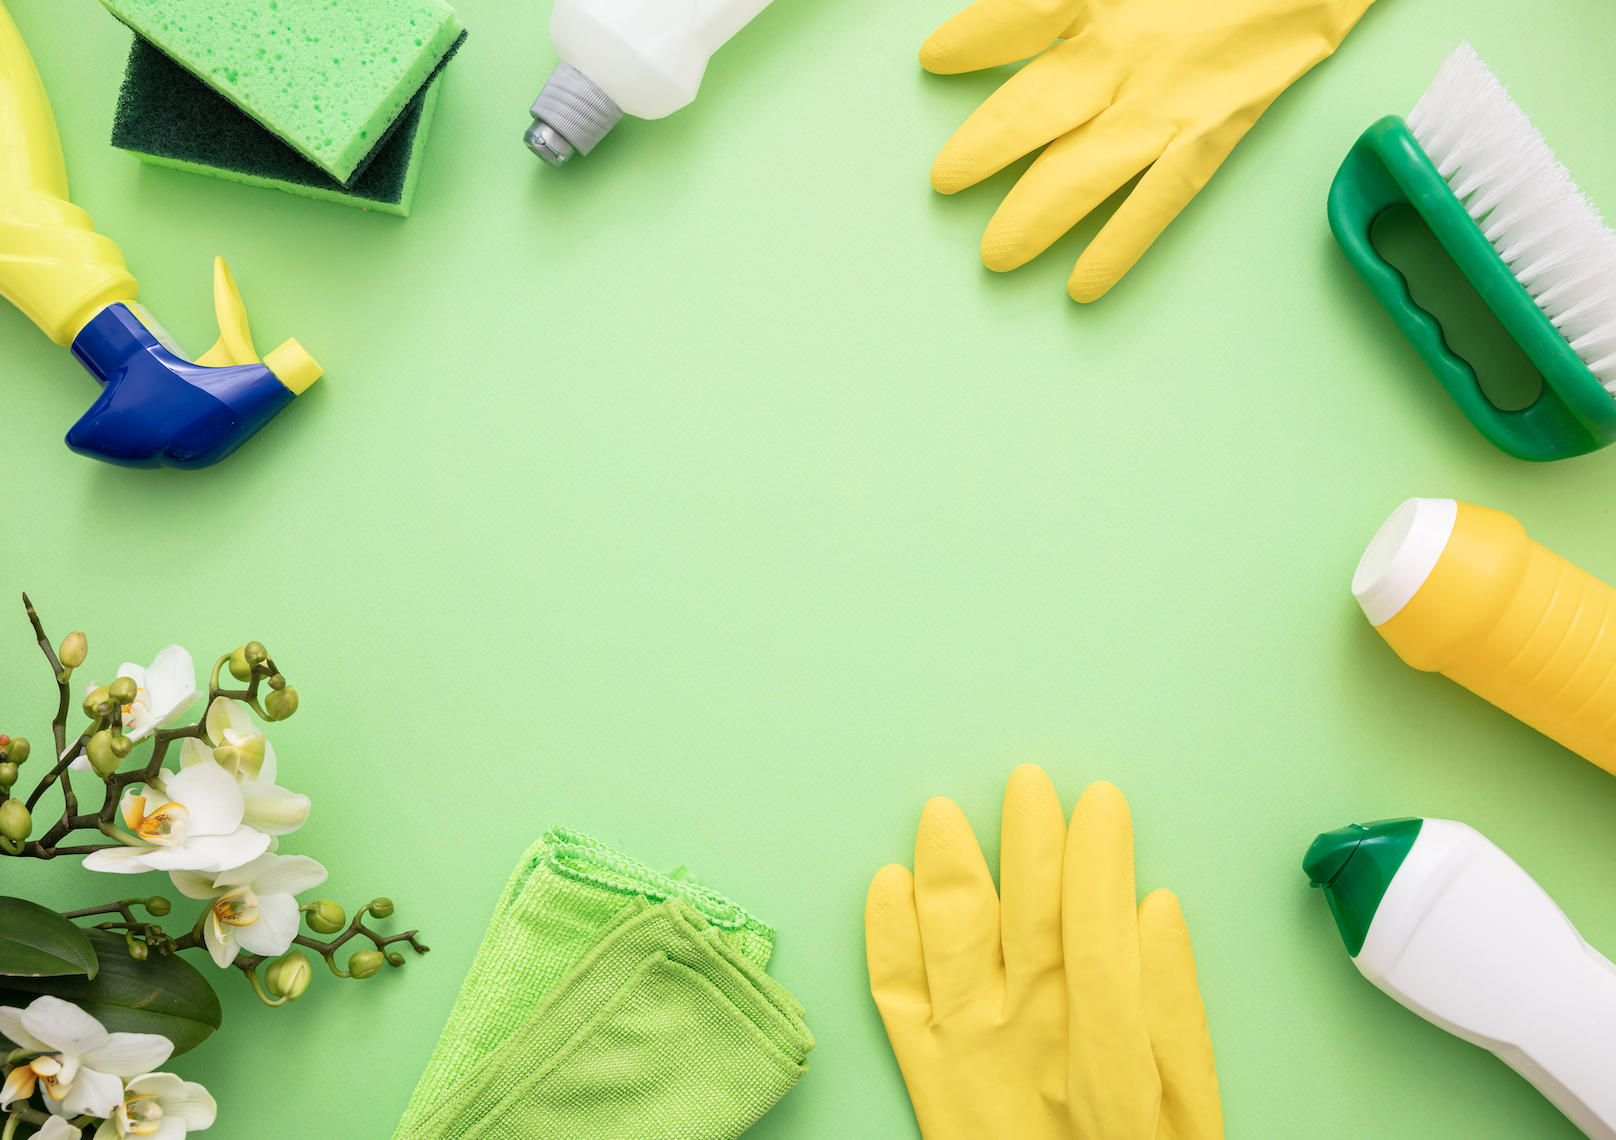 How To Make Your Own Homemade Cleaning Products Image